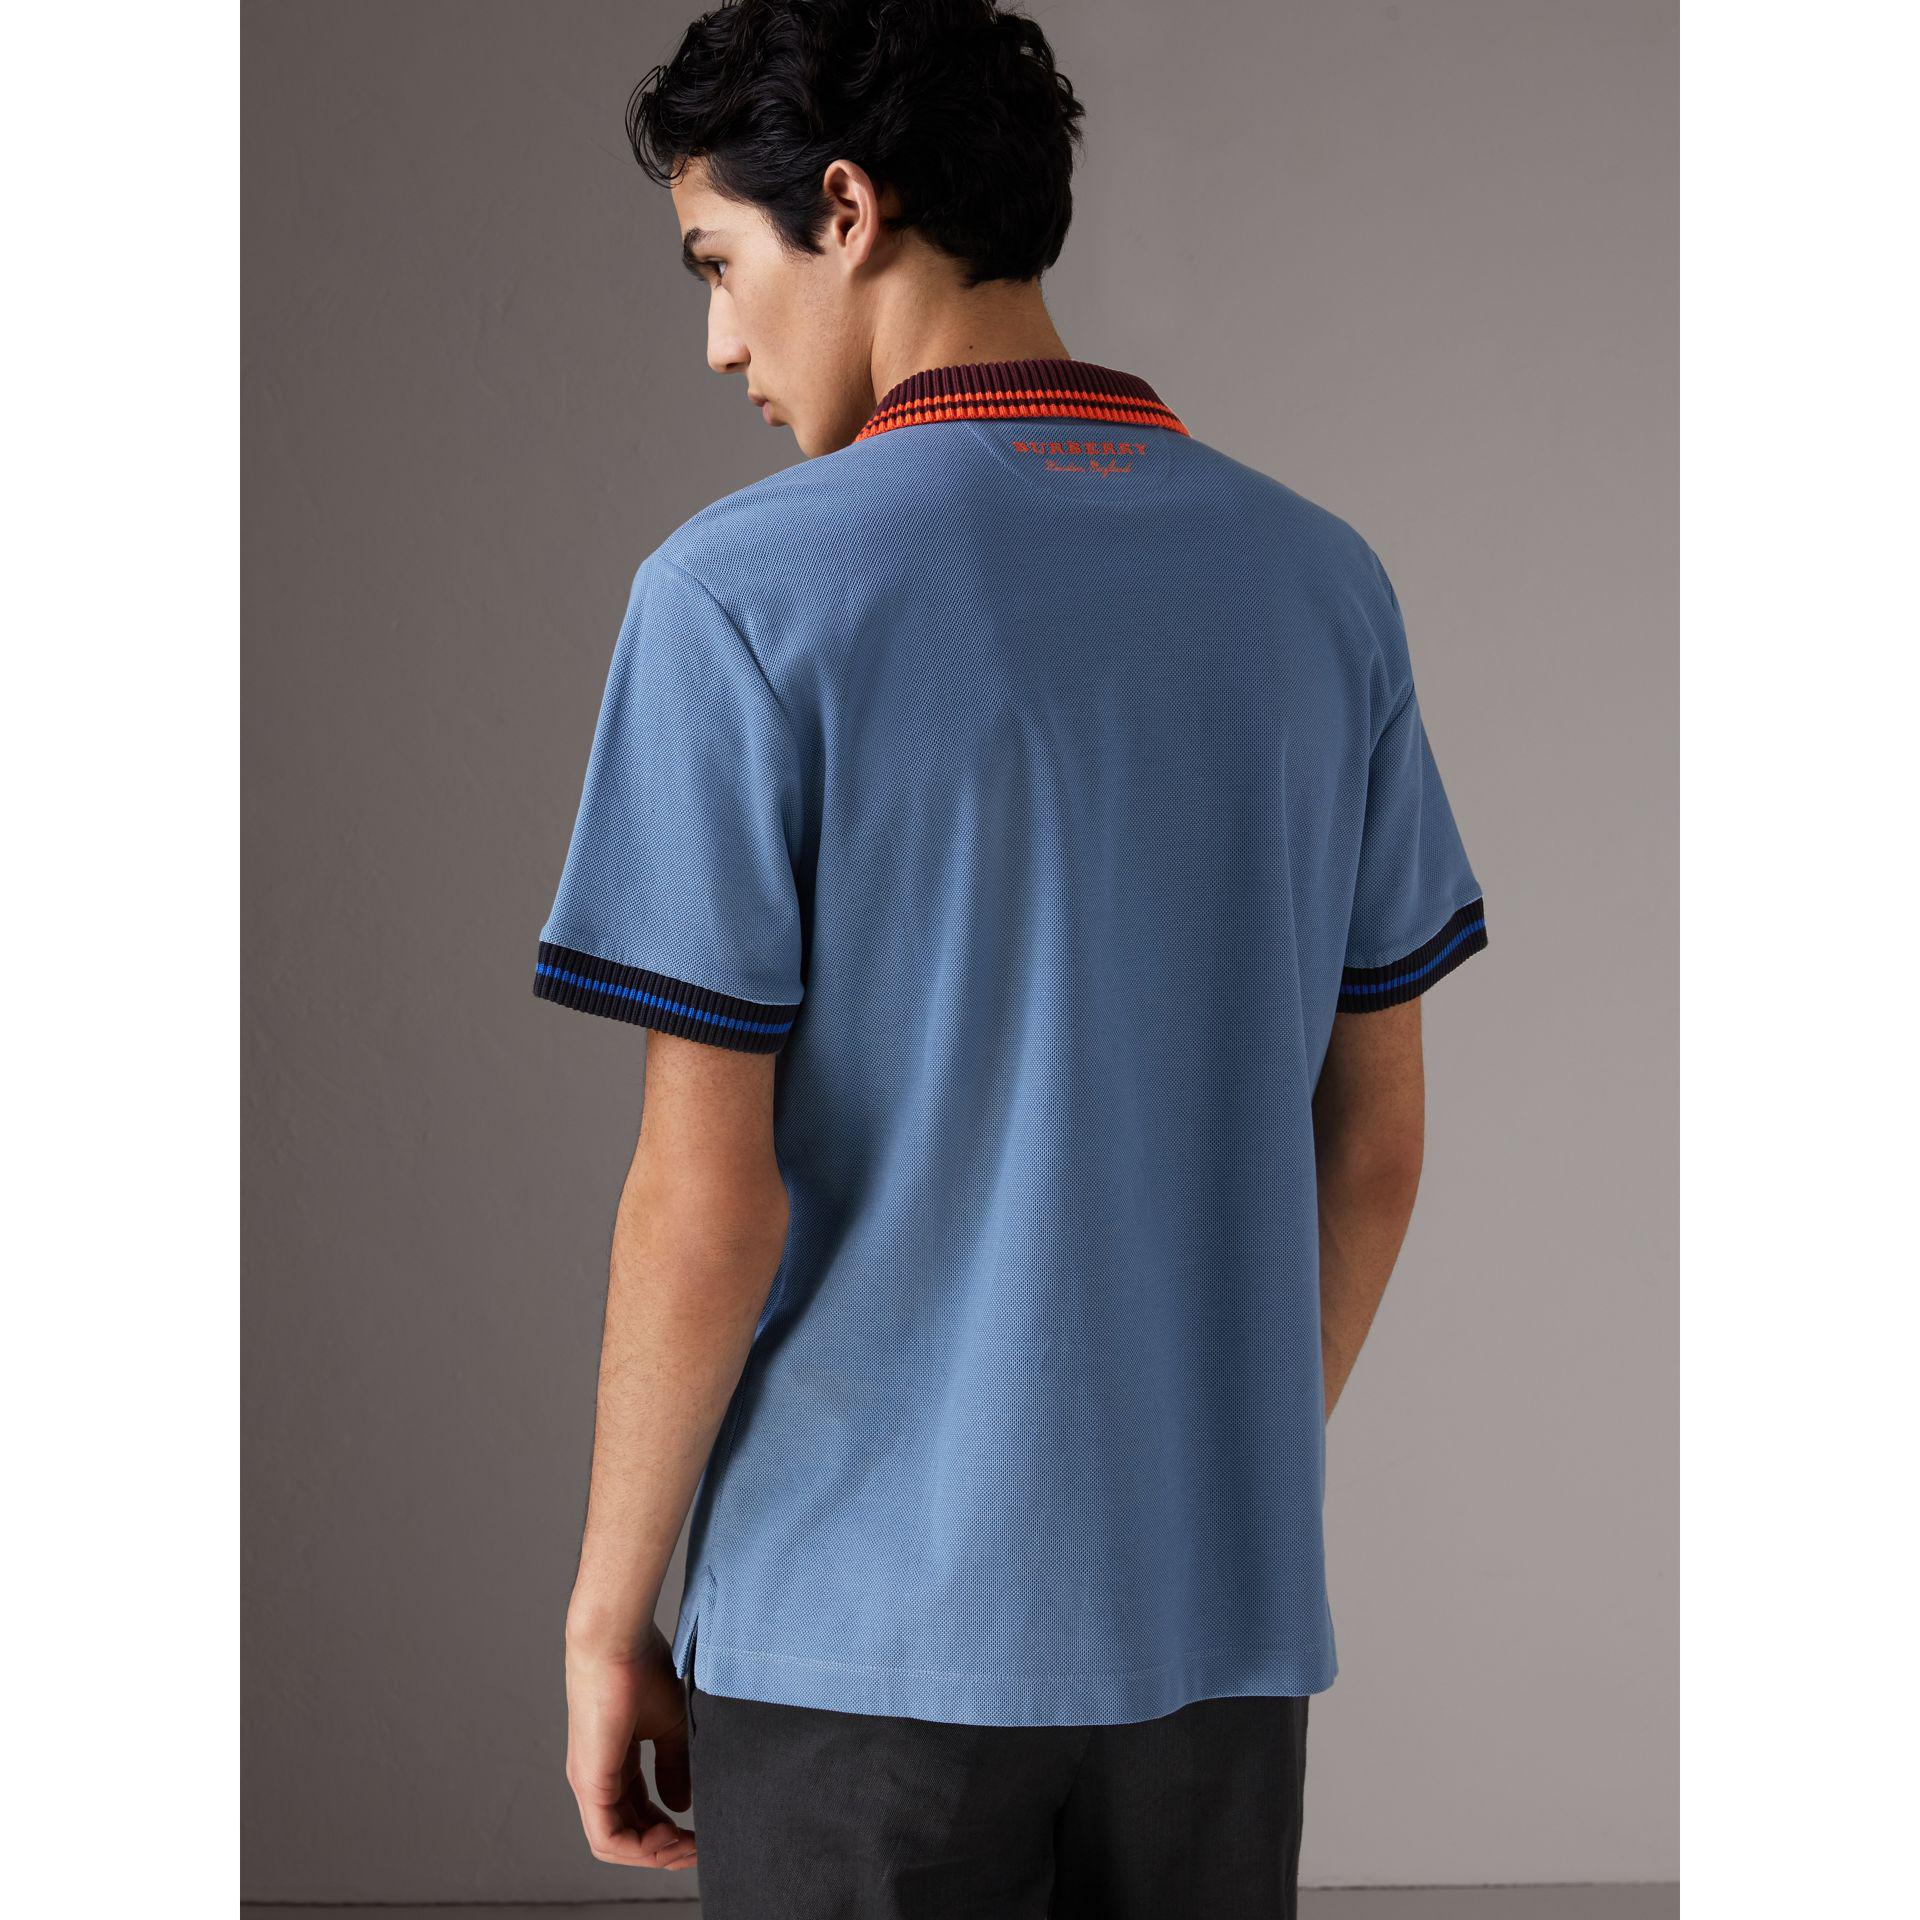 Outlet Pre Order Burberry Two-tone Stripe Knitted Detail Cotton Polo Shirt - Blue Wear Resistance Best Supplier With Mastercard Cheap Price Buy Cheap Visit rg9aDx2